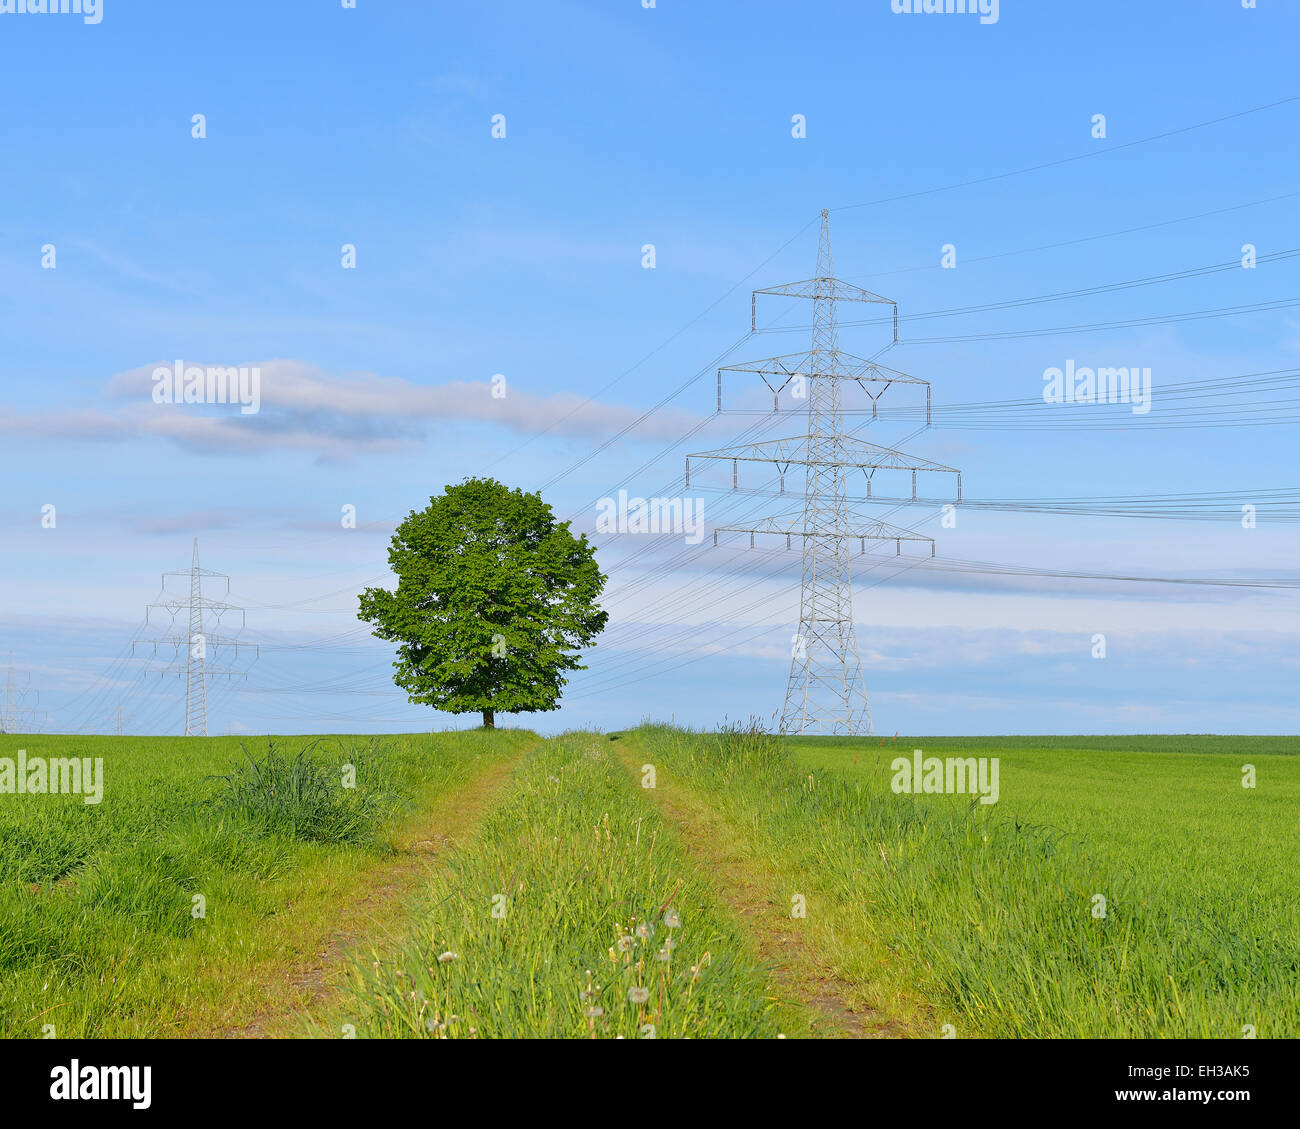 Tree in field next to pathway with hydro tower, Schwabhausen, Upper Bavaria, Bavaria, Germany Stock Photo